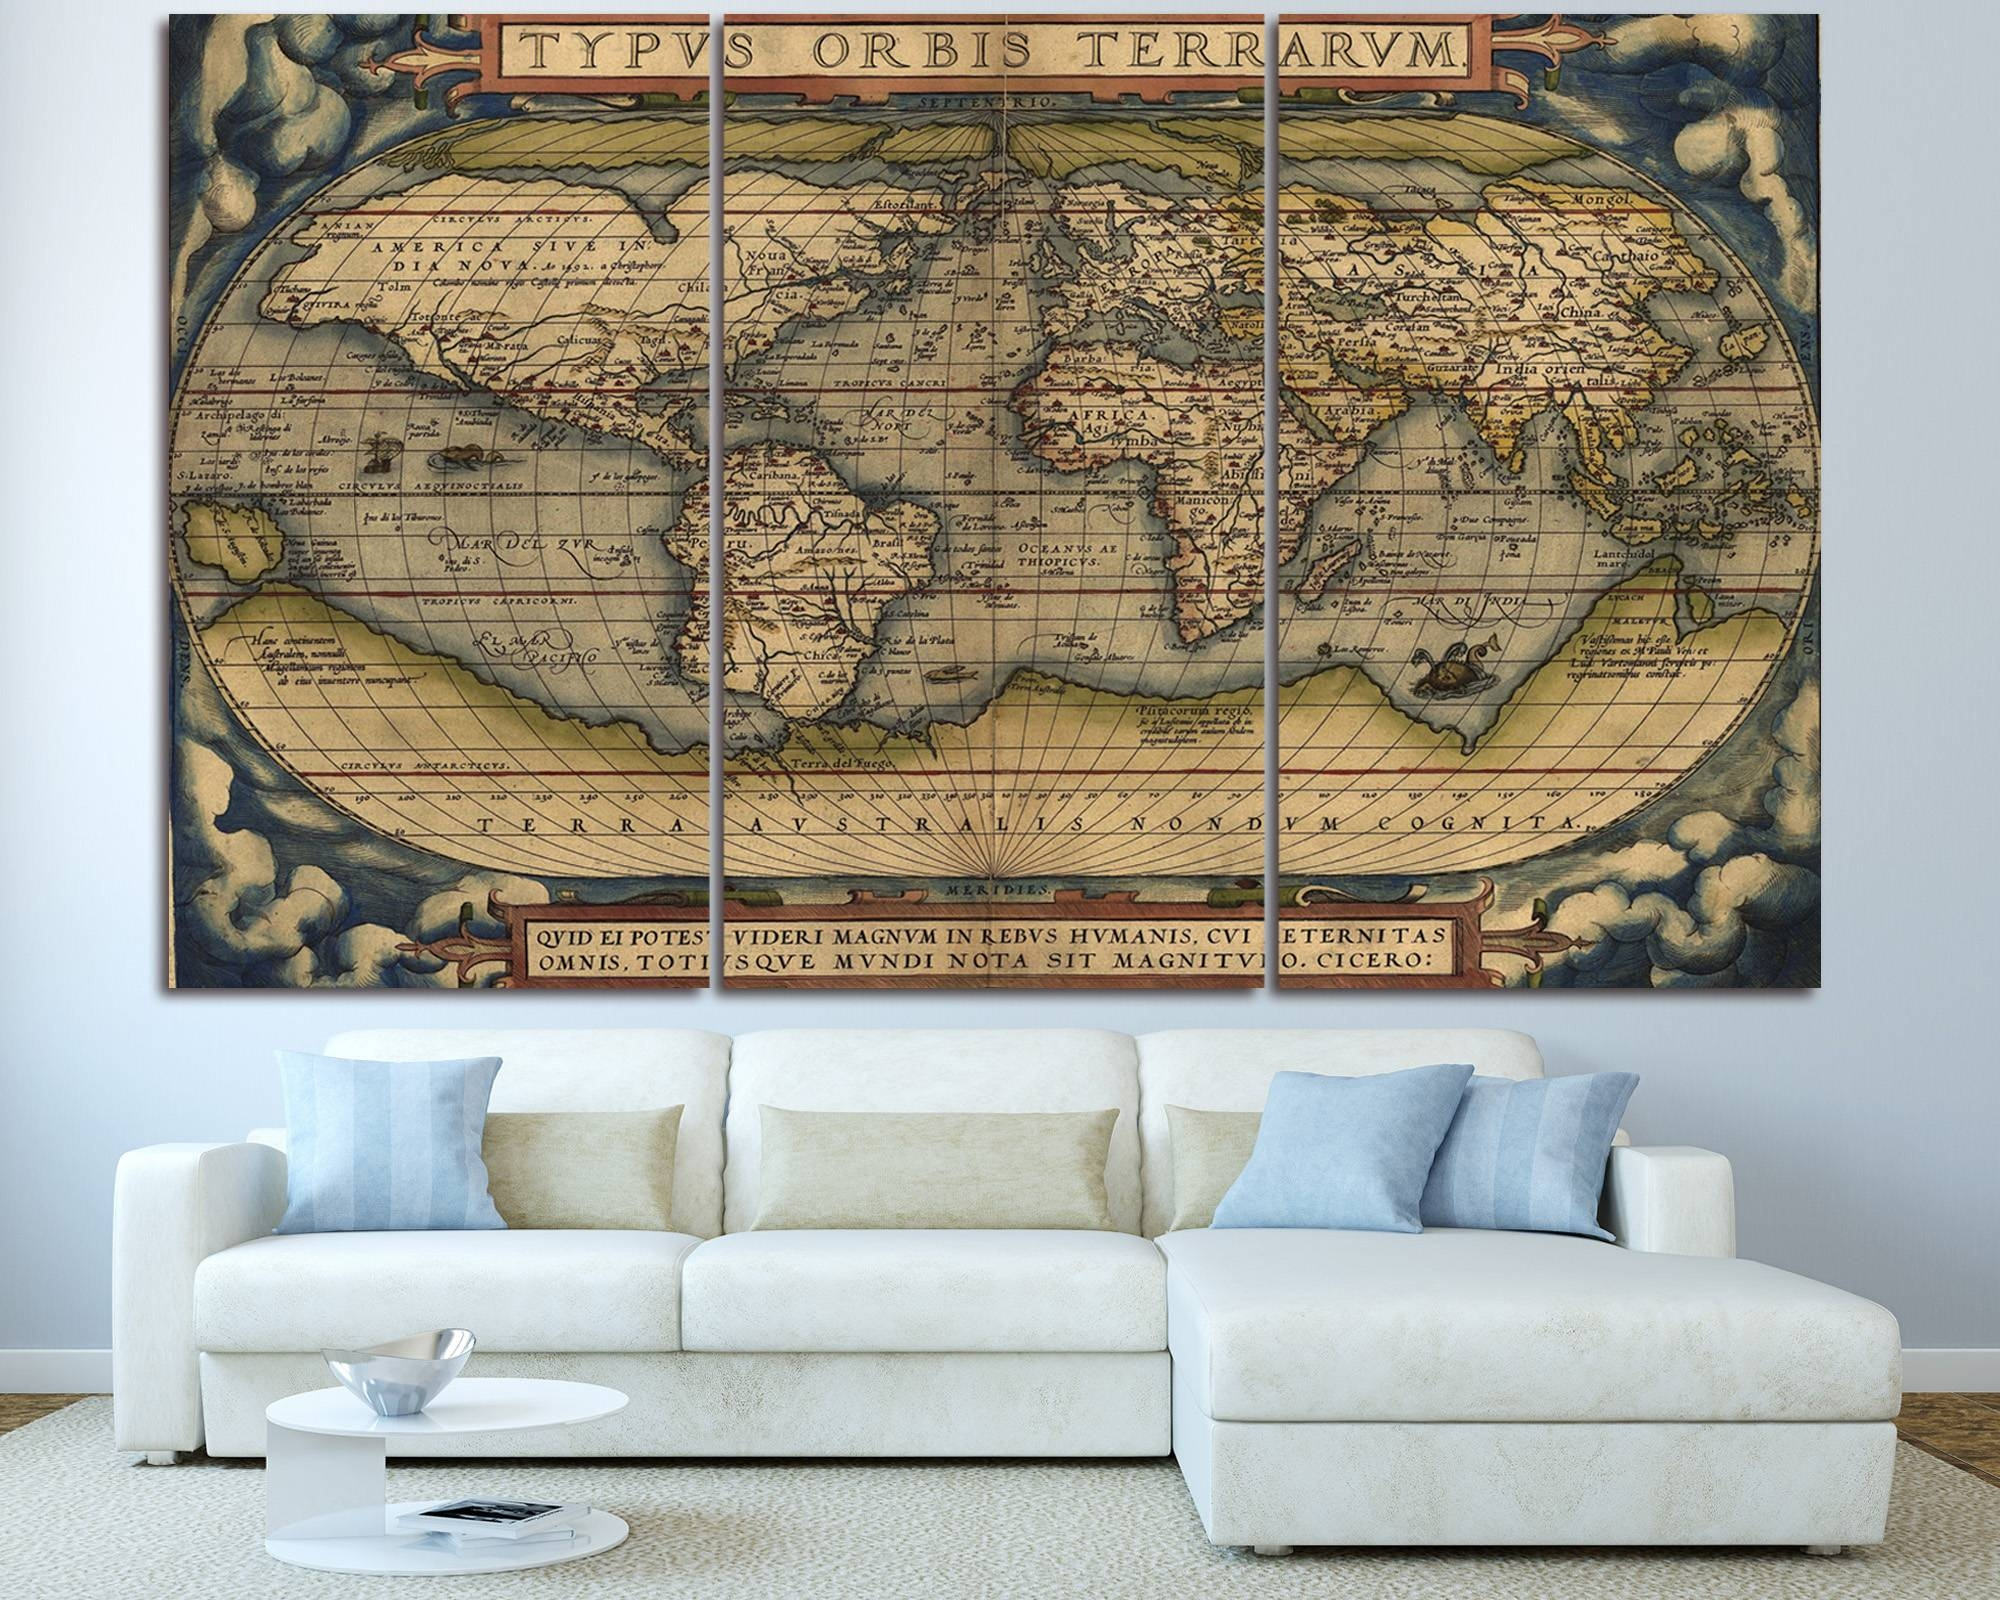 Texelprintart Studio – Canvas Wall Art Print For Home Decoration Intended For Latest Large Map Wall Art (Gallery 12 of 20)